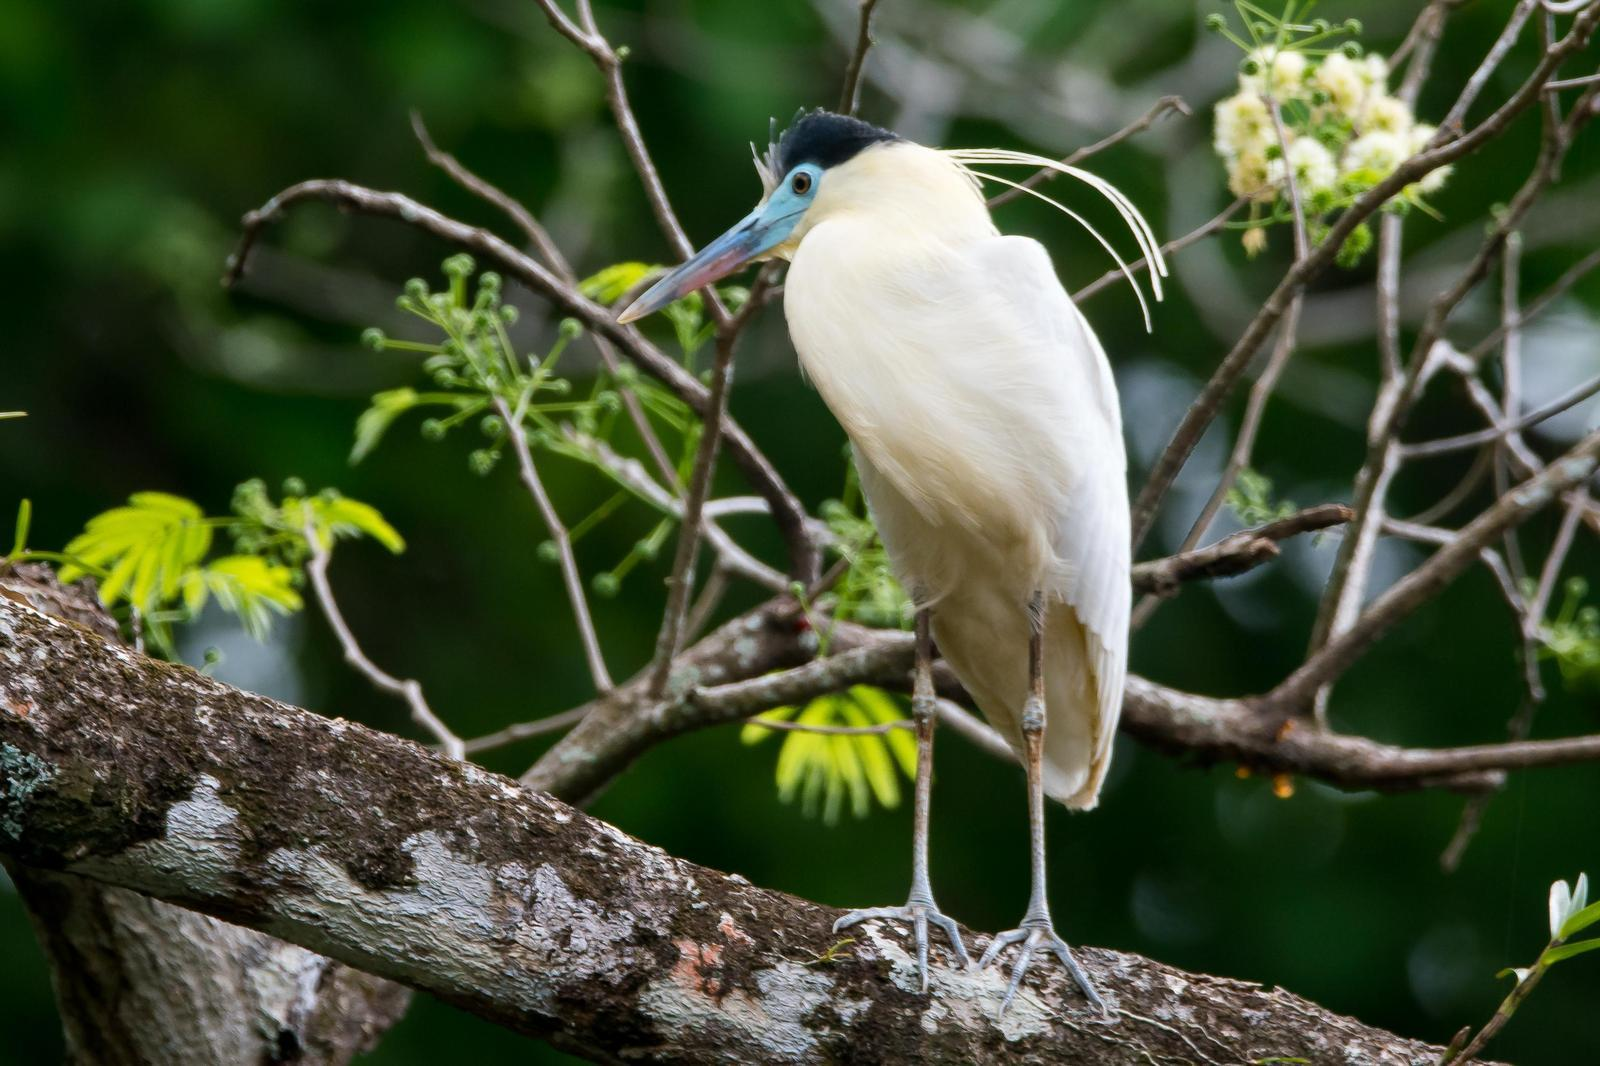 Capped Heron Photo by Gerald Hoekstra